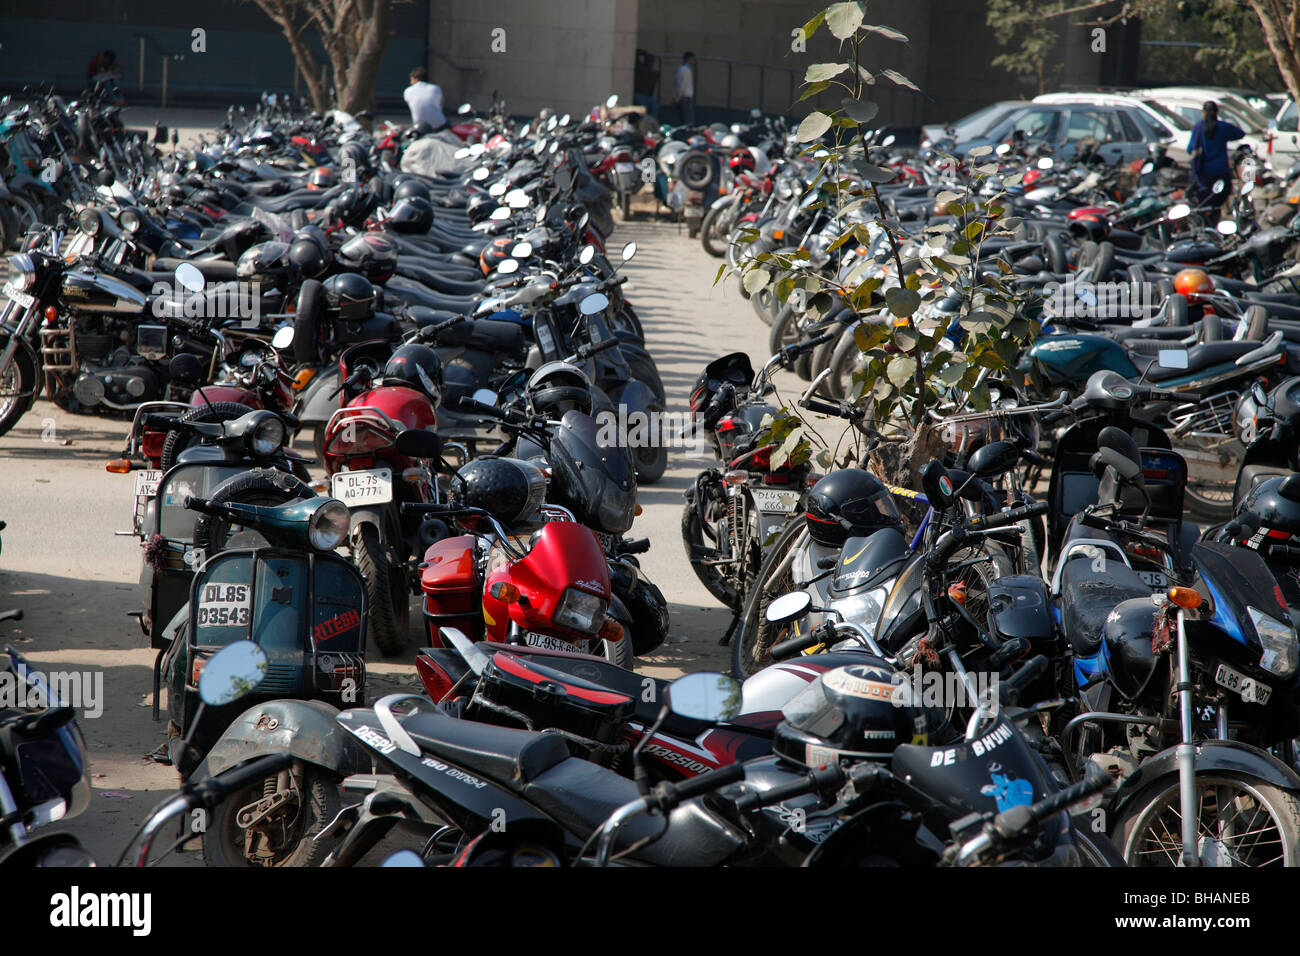 congested motorcycle parking motorbikes rows - Stock Image